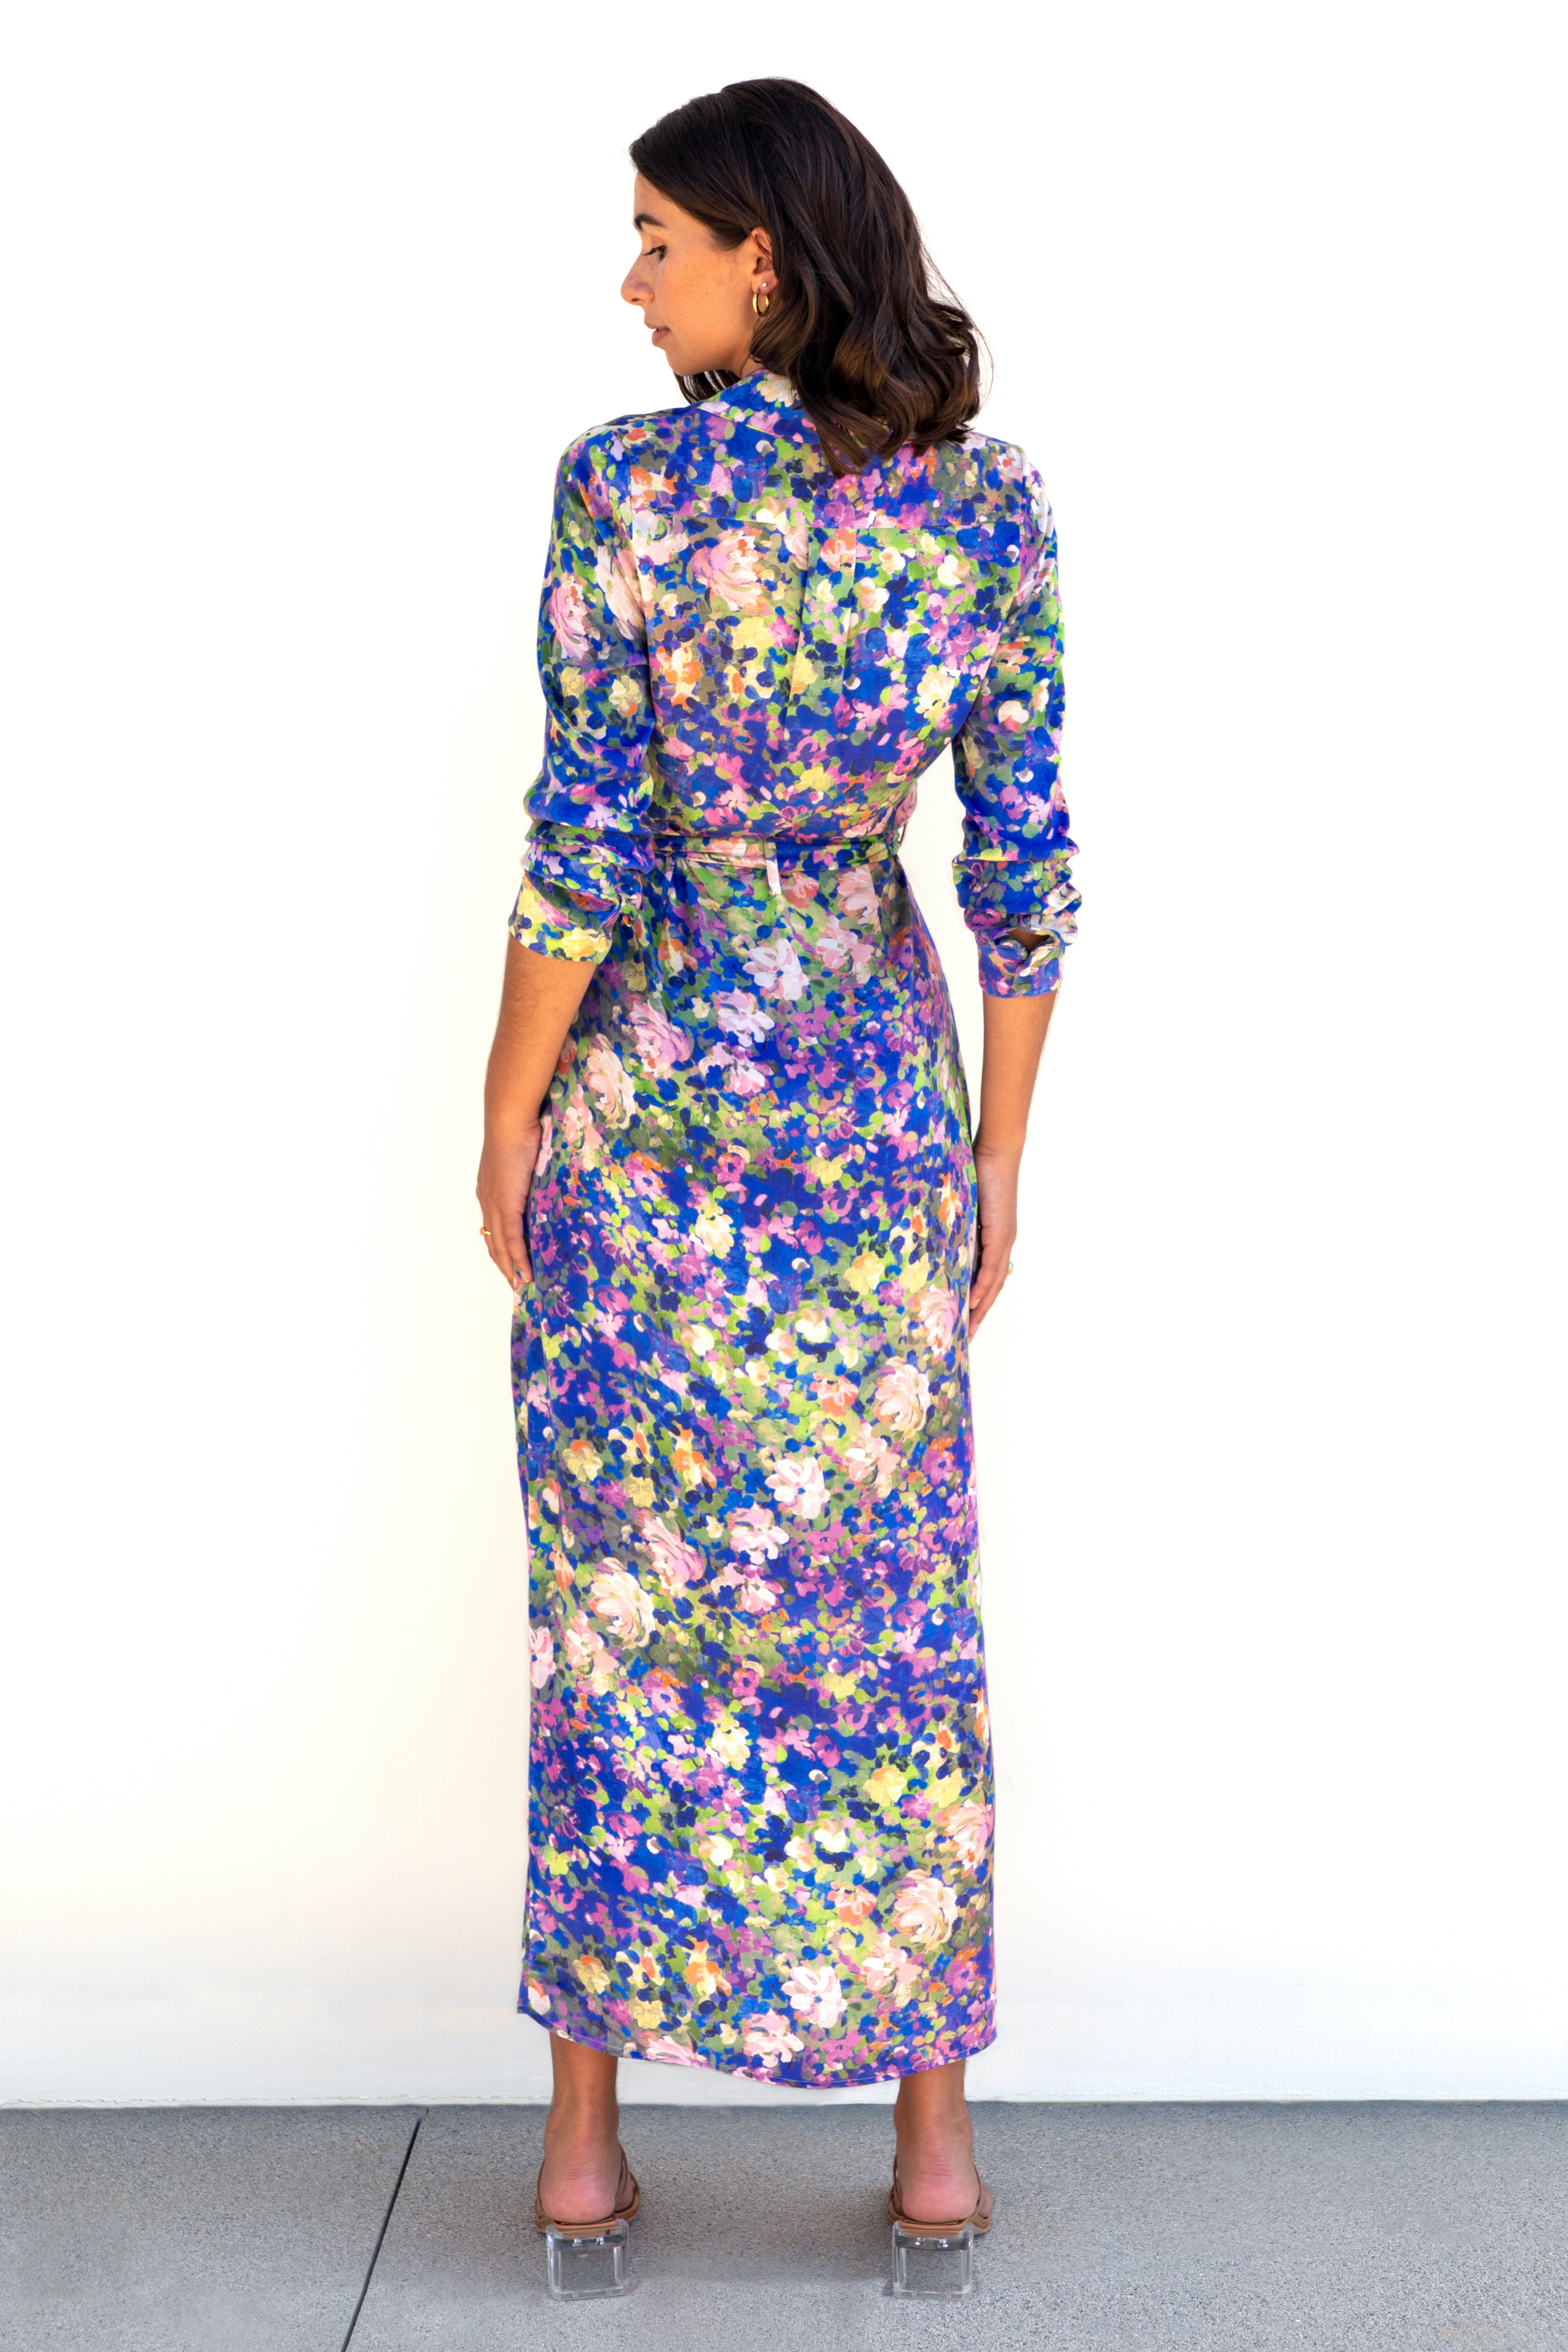 Back of model wearing Finchley Camino's maxi length blue floral collared button down dress with long sleeves rolled up to elbows